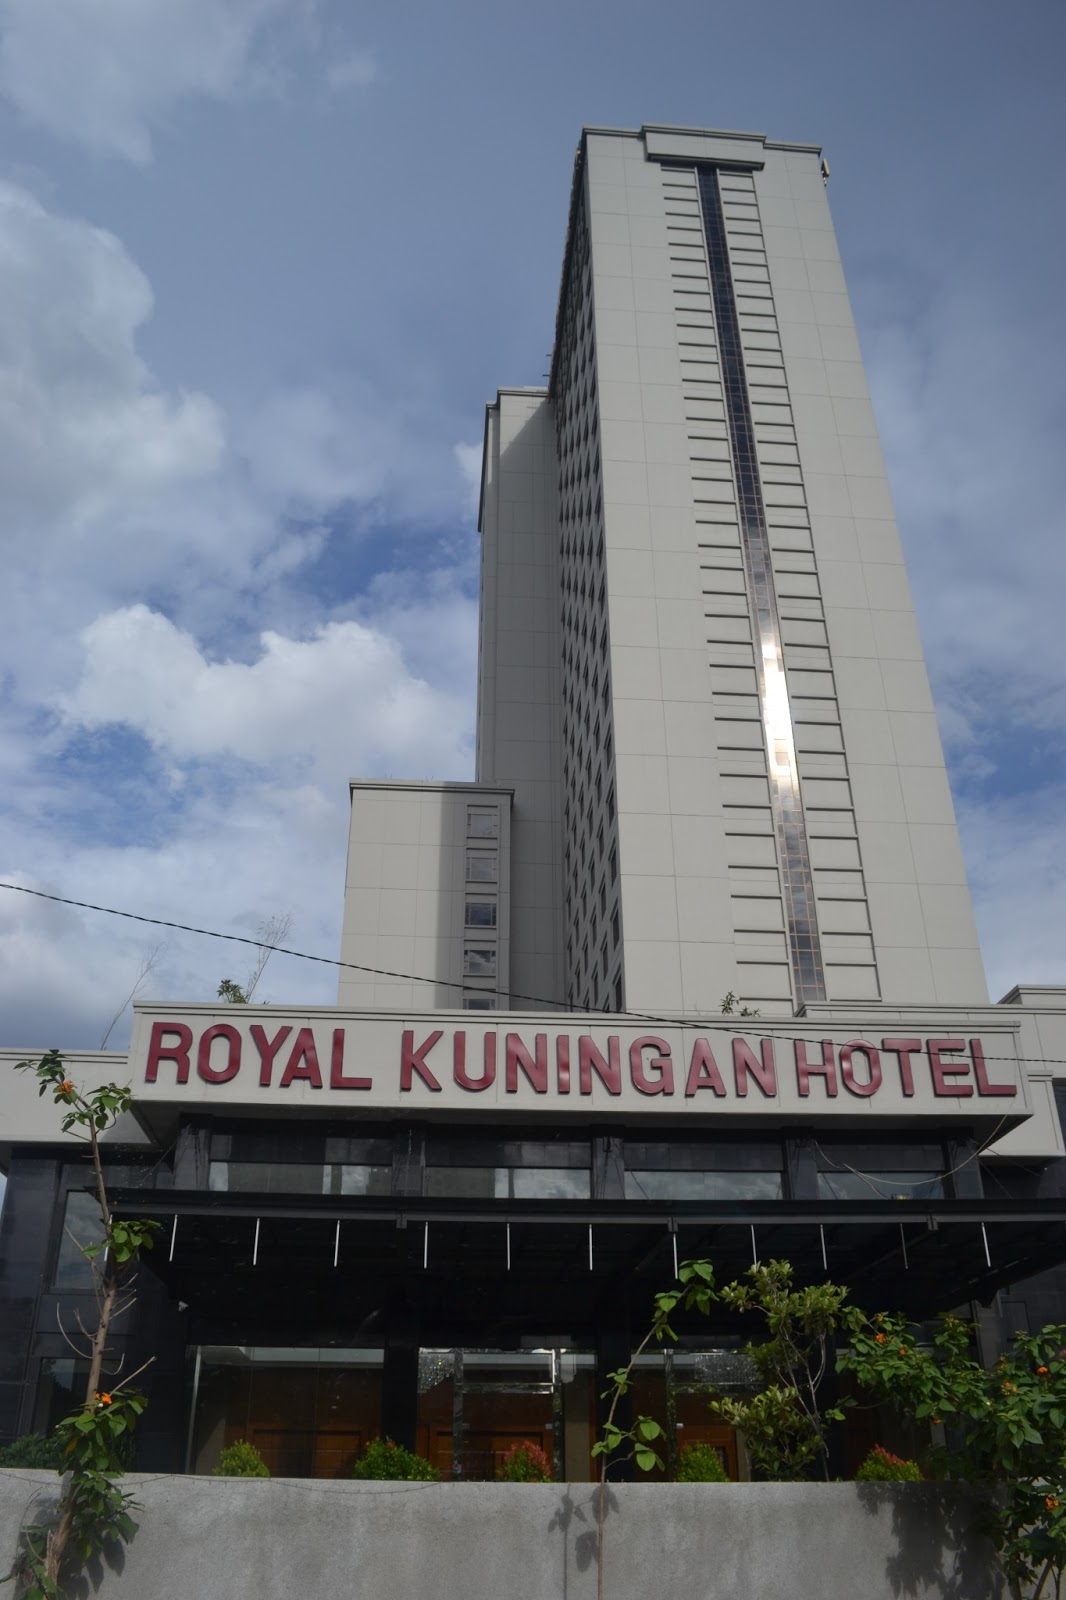 Royal kuningan hotel in jakarta the freudian slip of a for Hotel royal